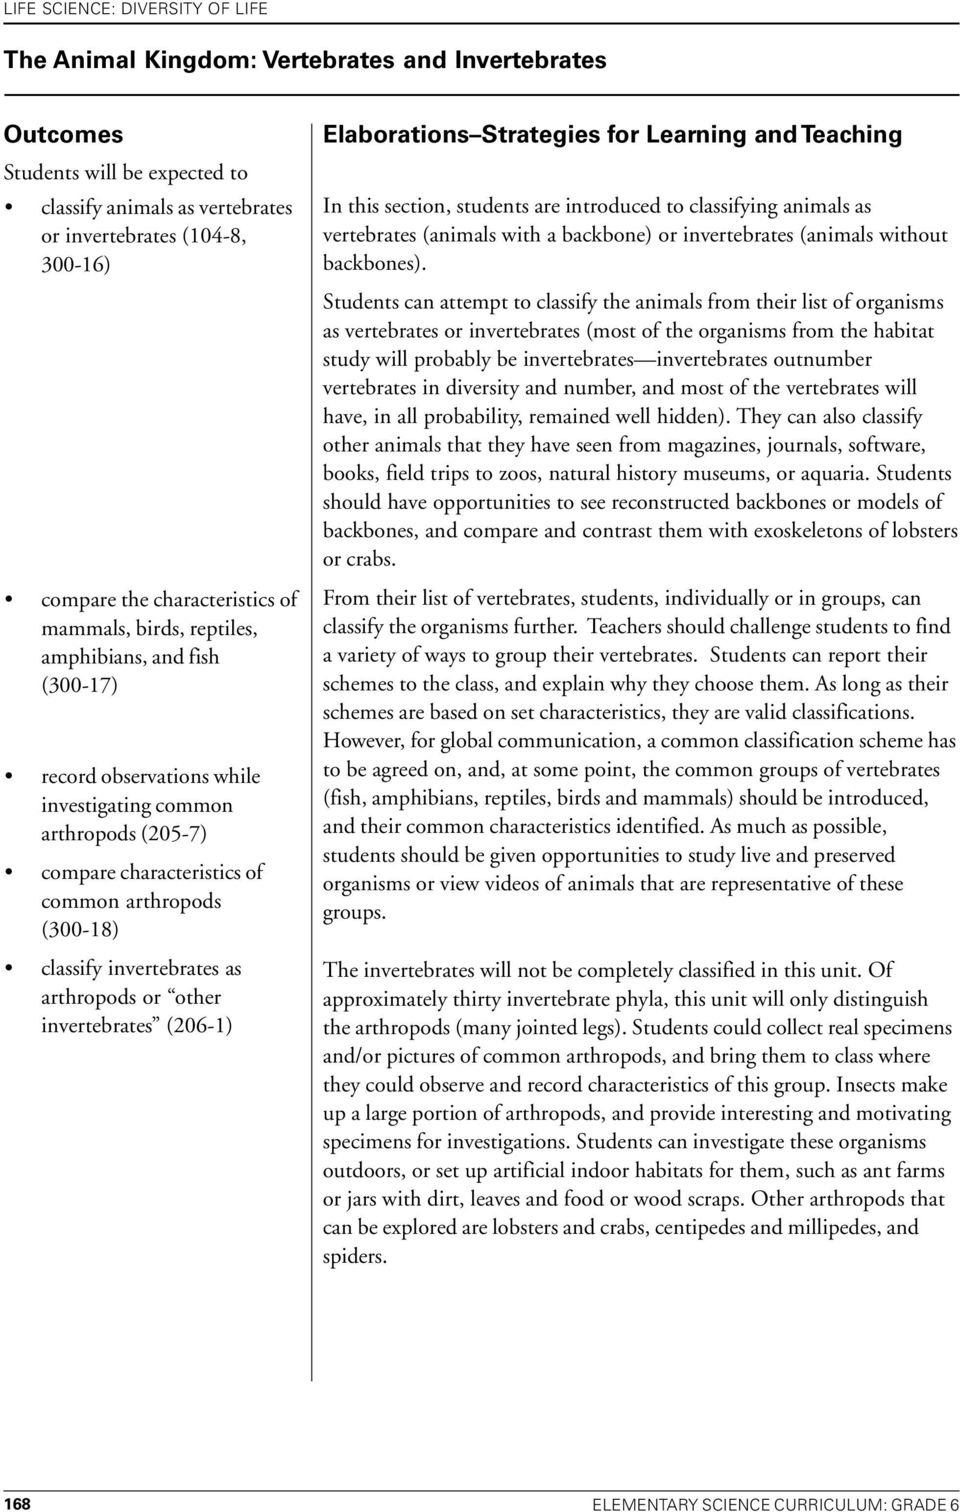 Grade 6 Life Science Diversity Of Pdf Bitesize Physics Series And Parallel Circuits Revision Page 4 Arthropods Or Other Invertebrates 206 1 Elaborations Strategies For Learning Teaching In